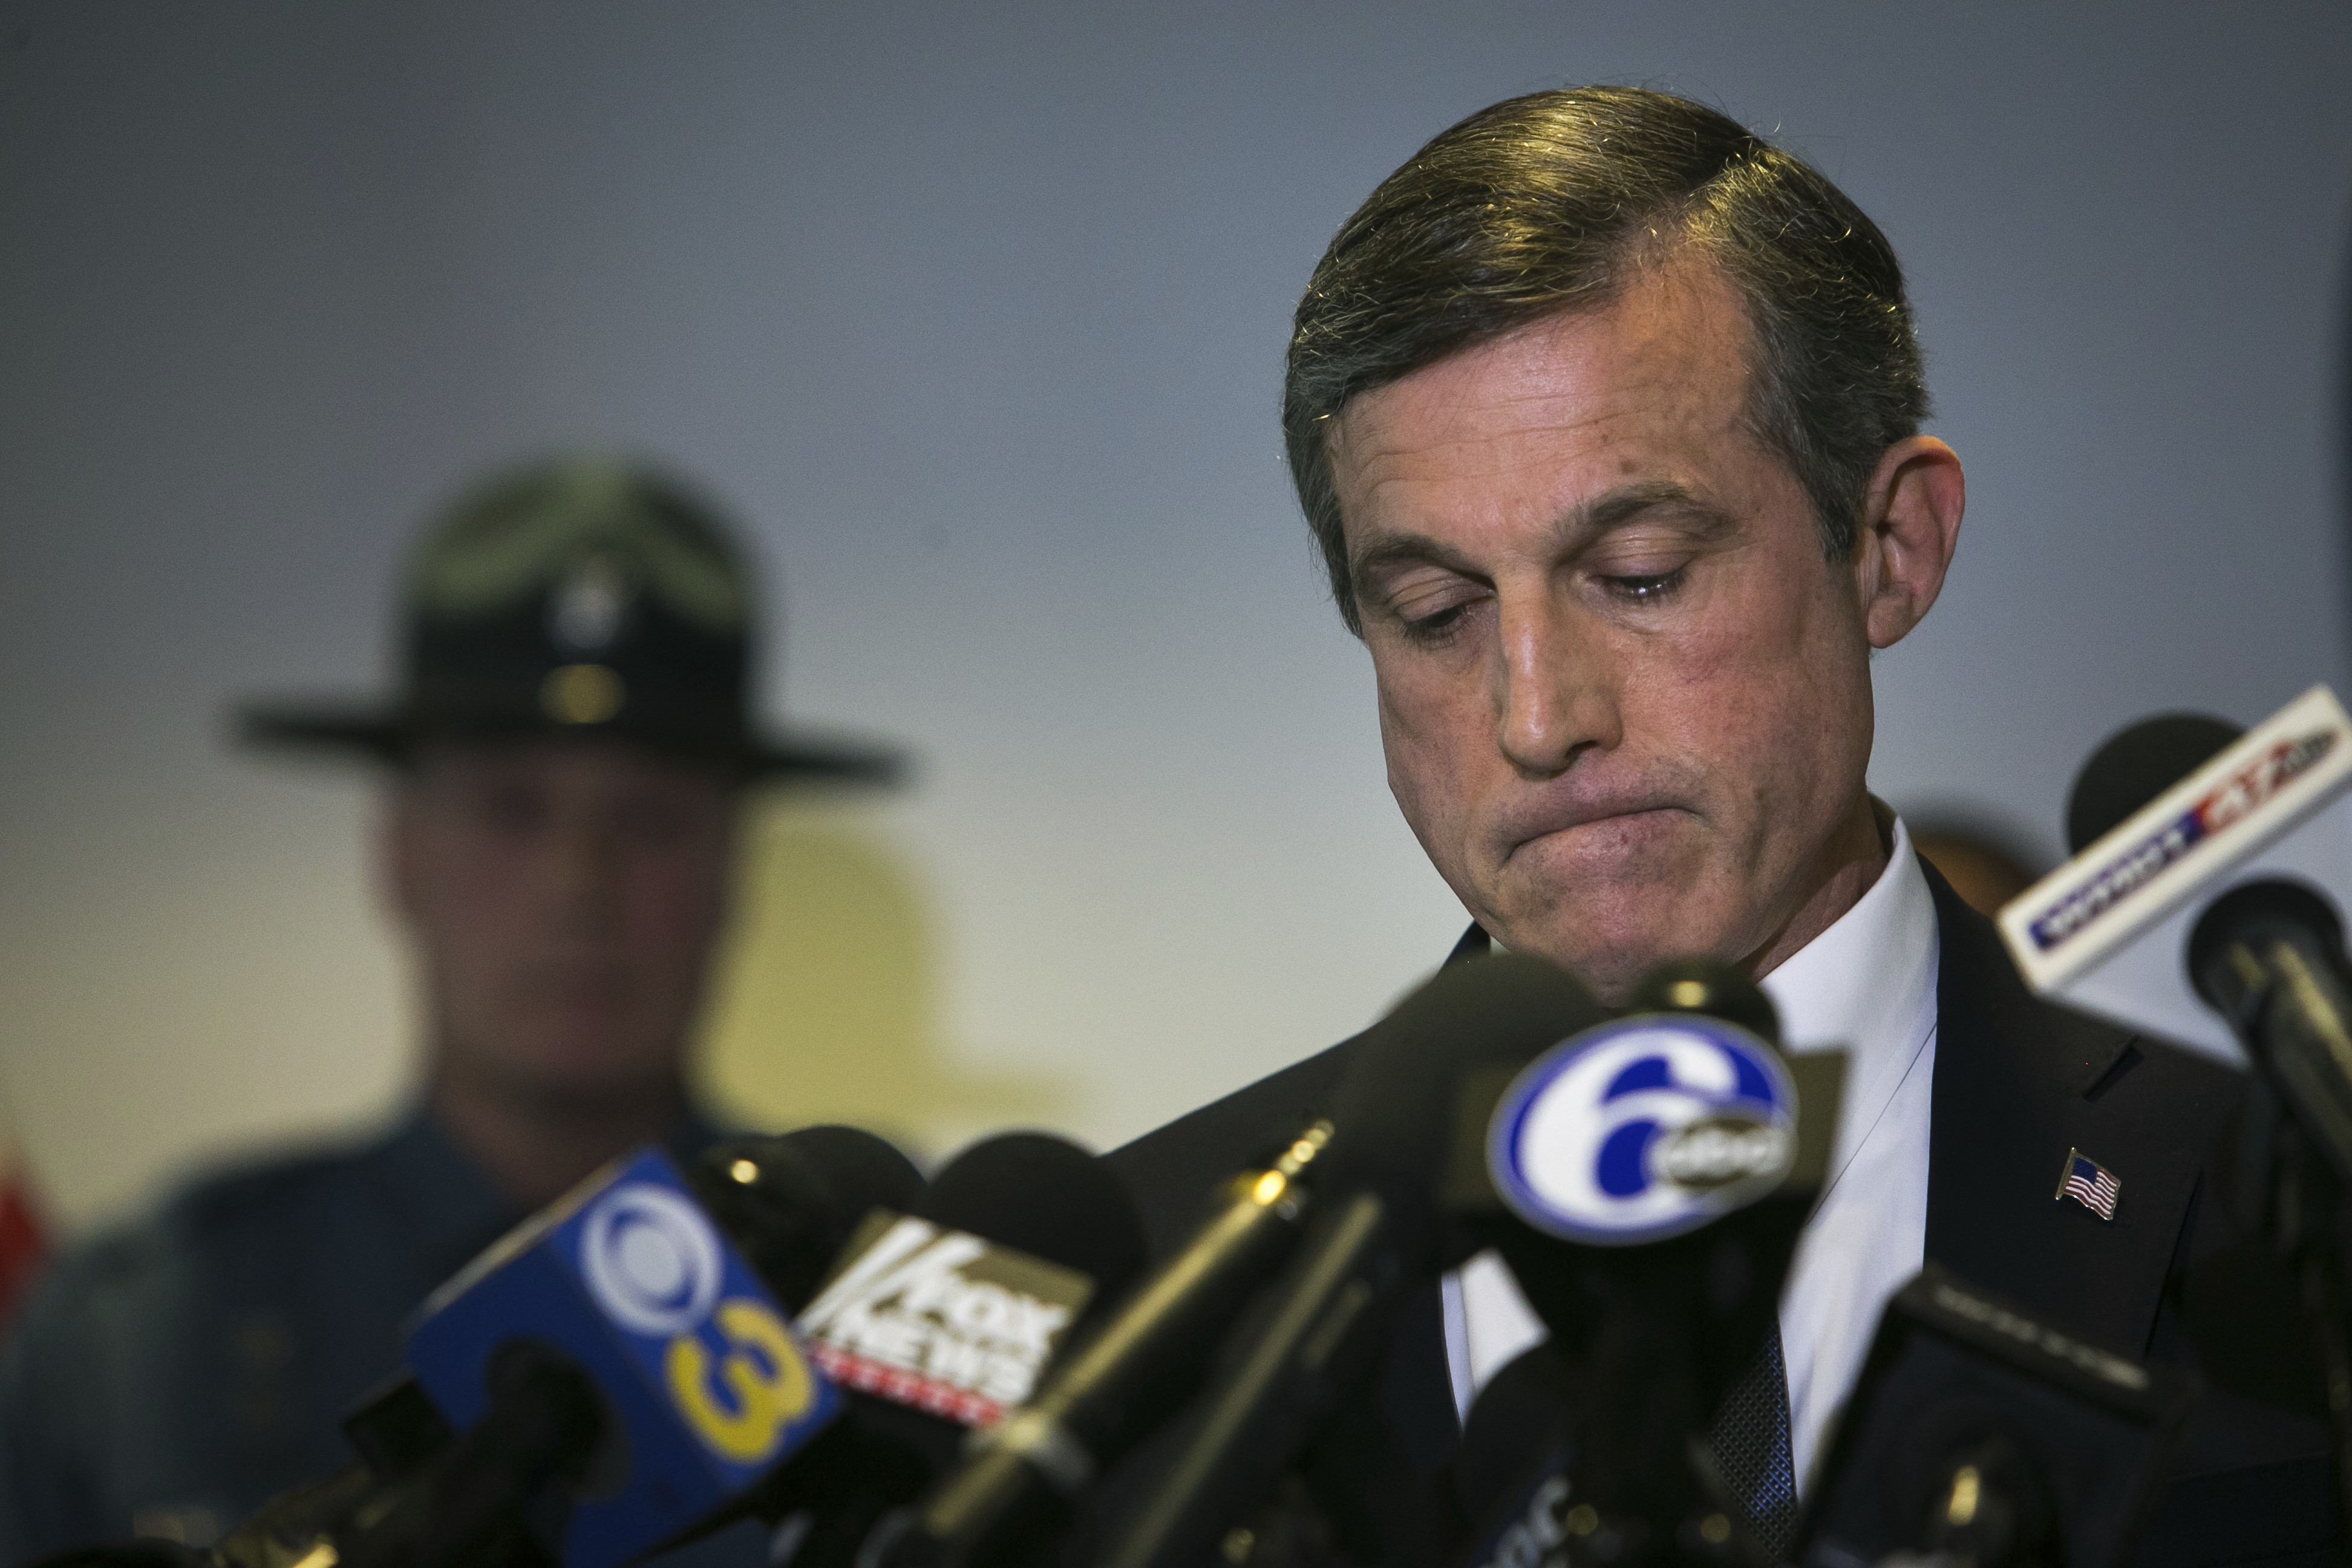 Gov. John Carney at a news conference, on the loss of one of the prison guard at Vaughn Correctional Center during the hostage situation in Smyrna, Del., on Feb. 2, 2017. (Suchat Pederson/The Wilmington News-Journal via AP)